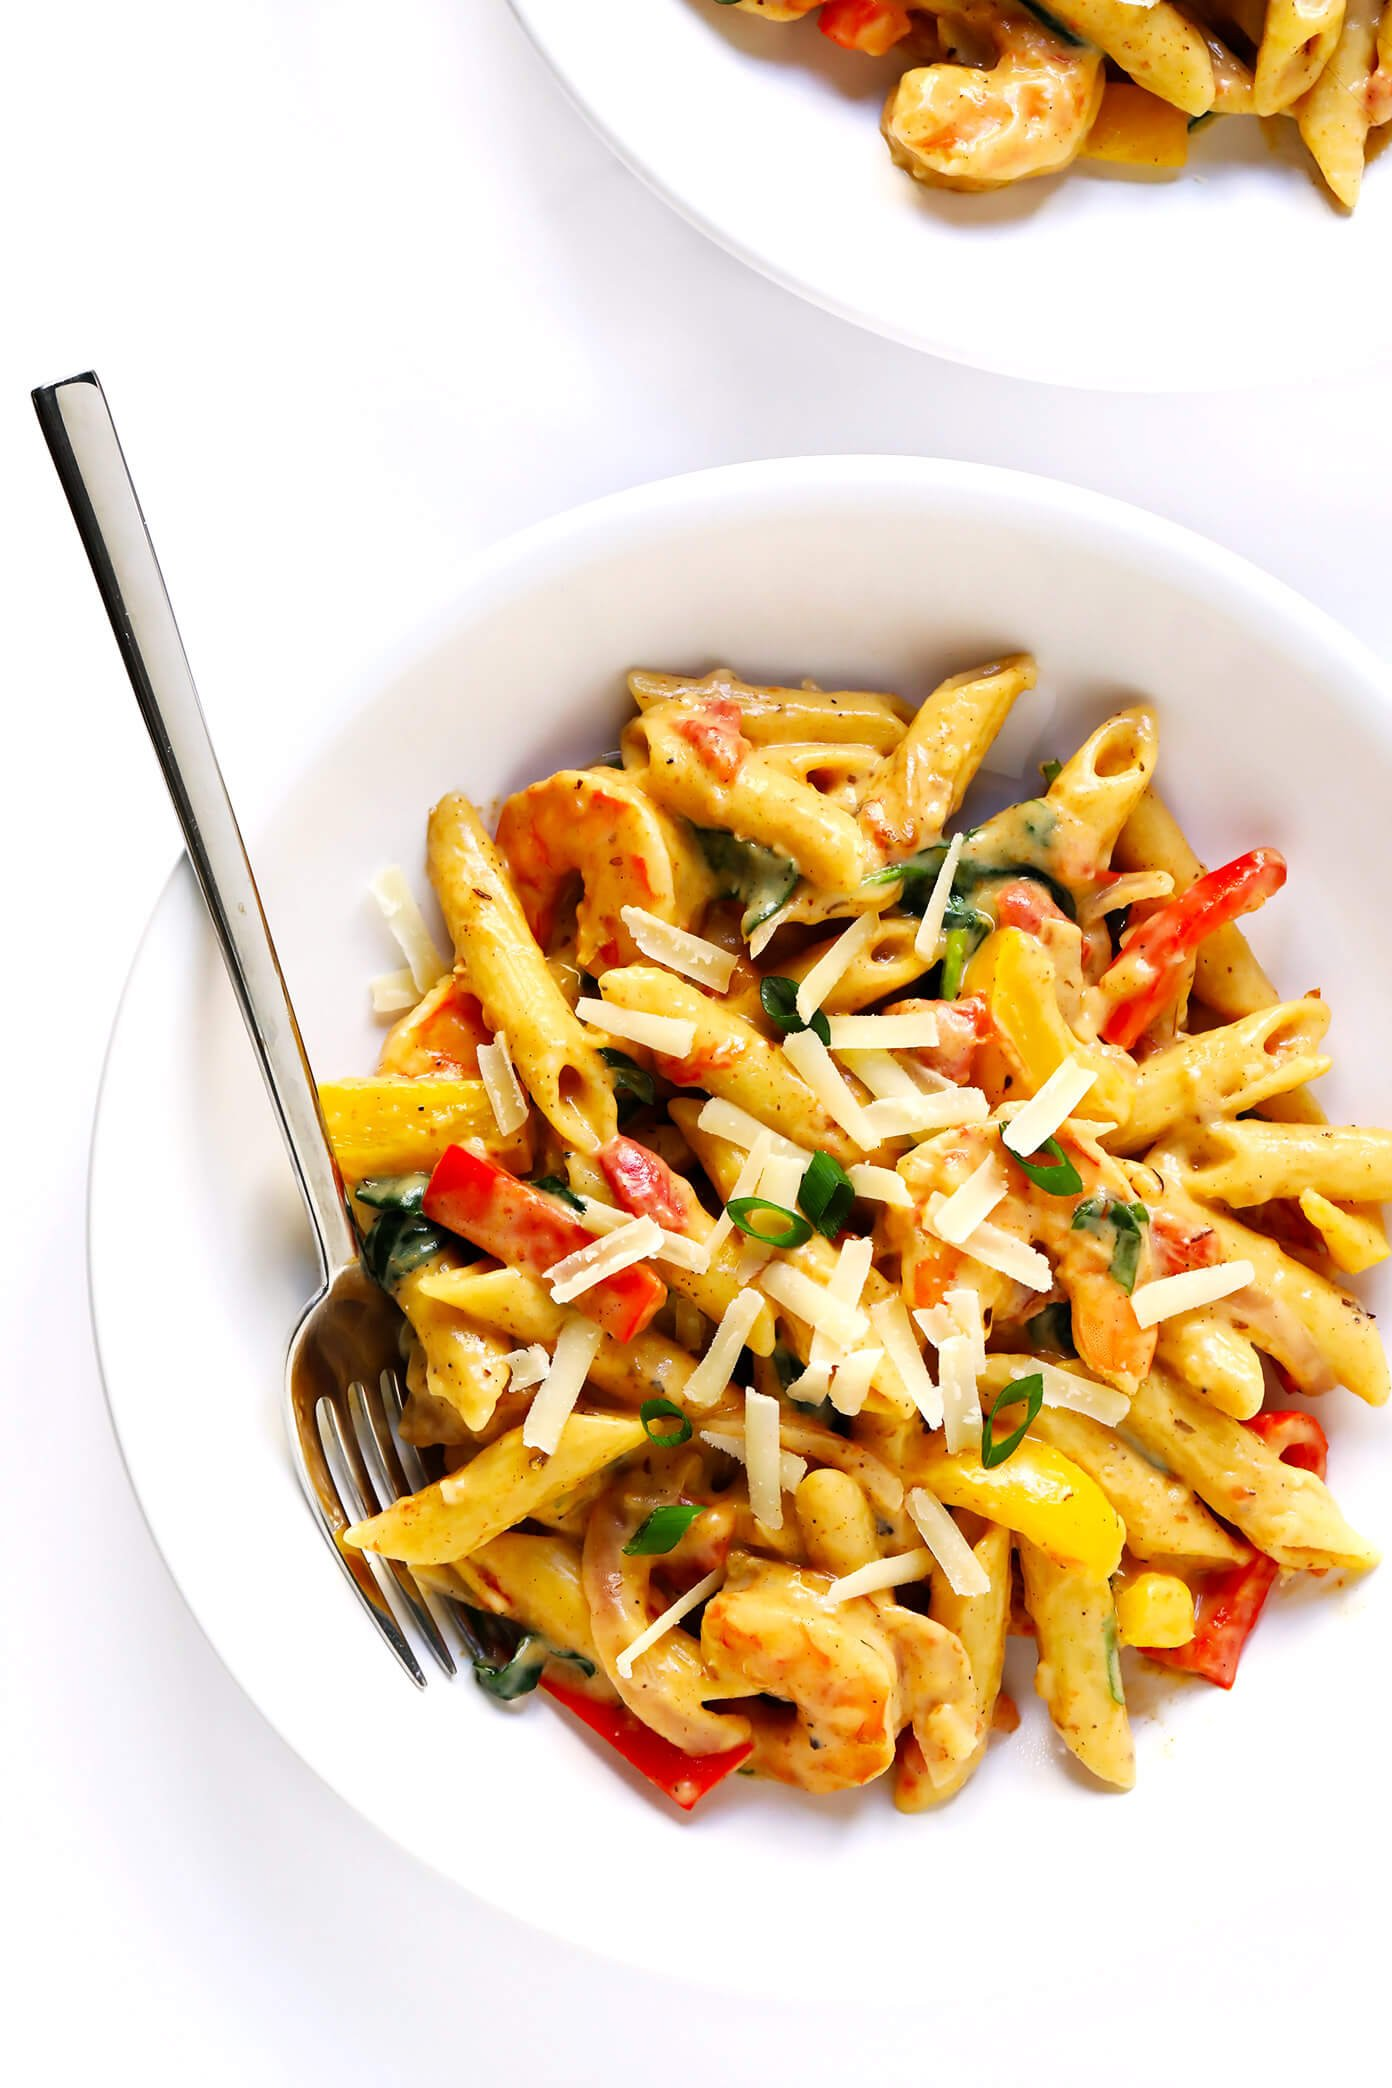 Creamy Cajun Pasta with Shrimp and Vegetables